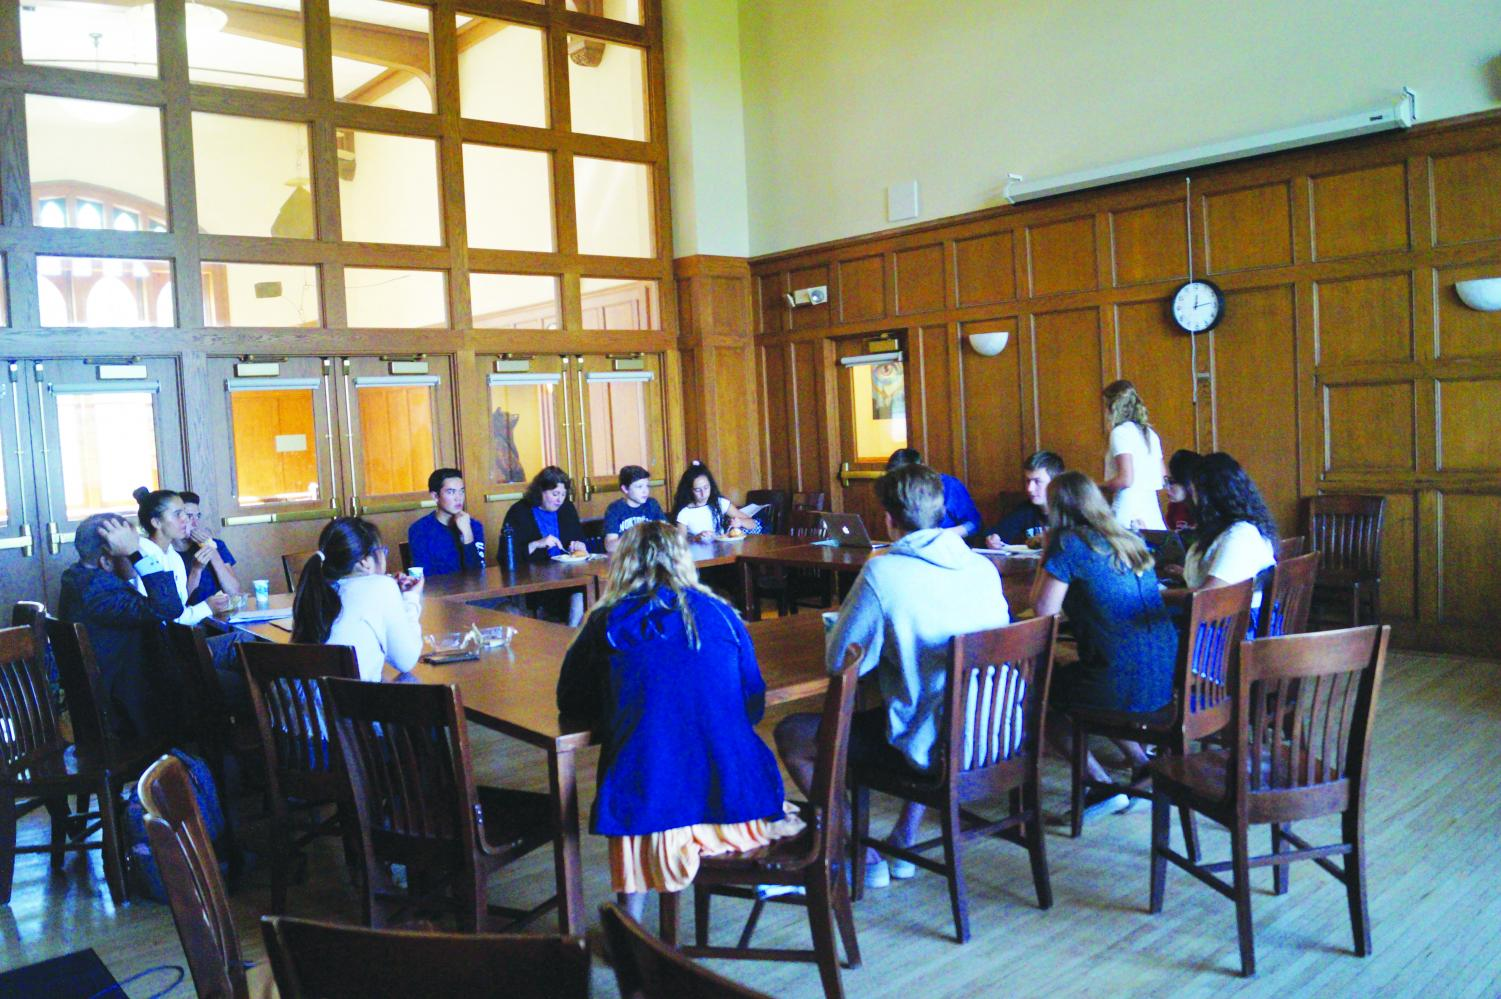 During Friday lunch meetings, any student is welcome to come and spectate in the Cherne.